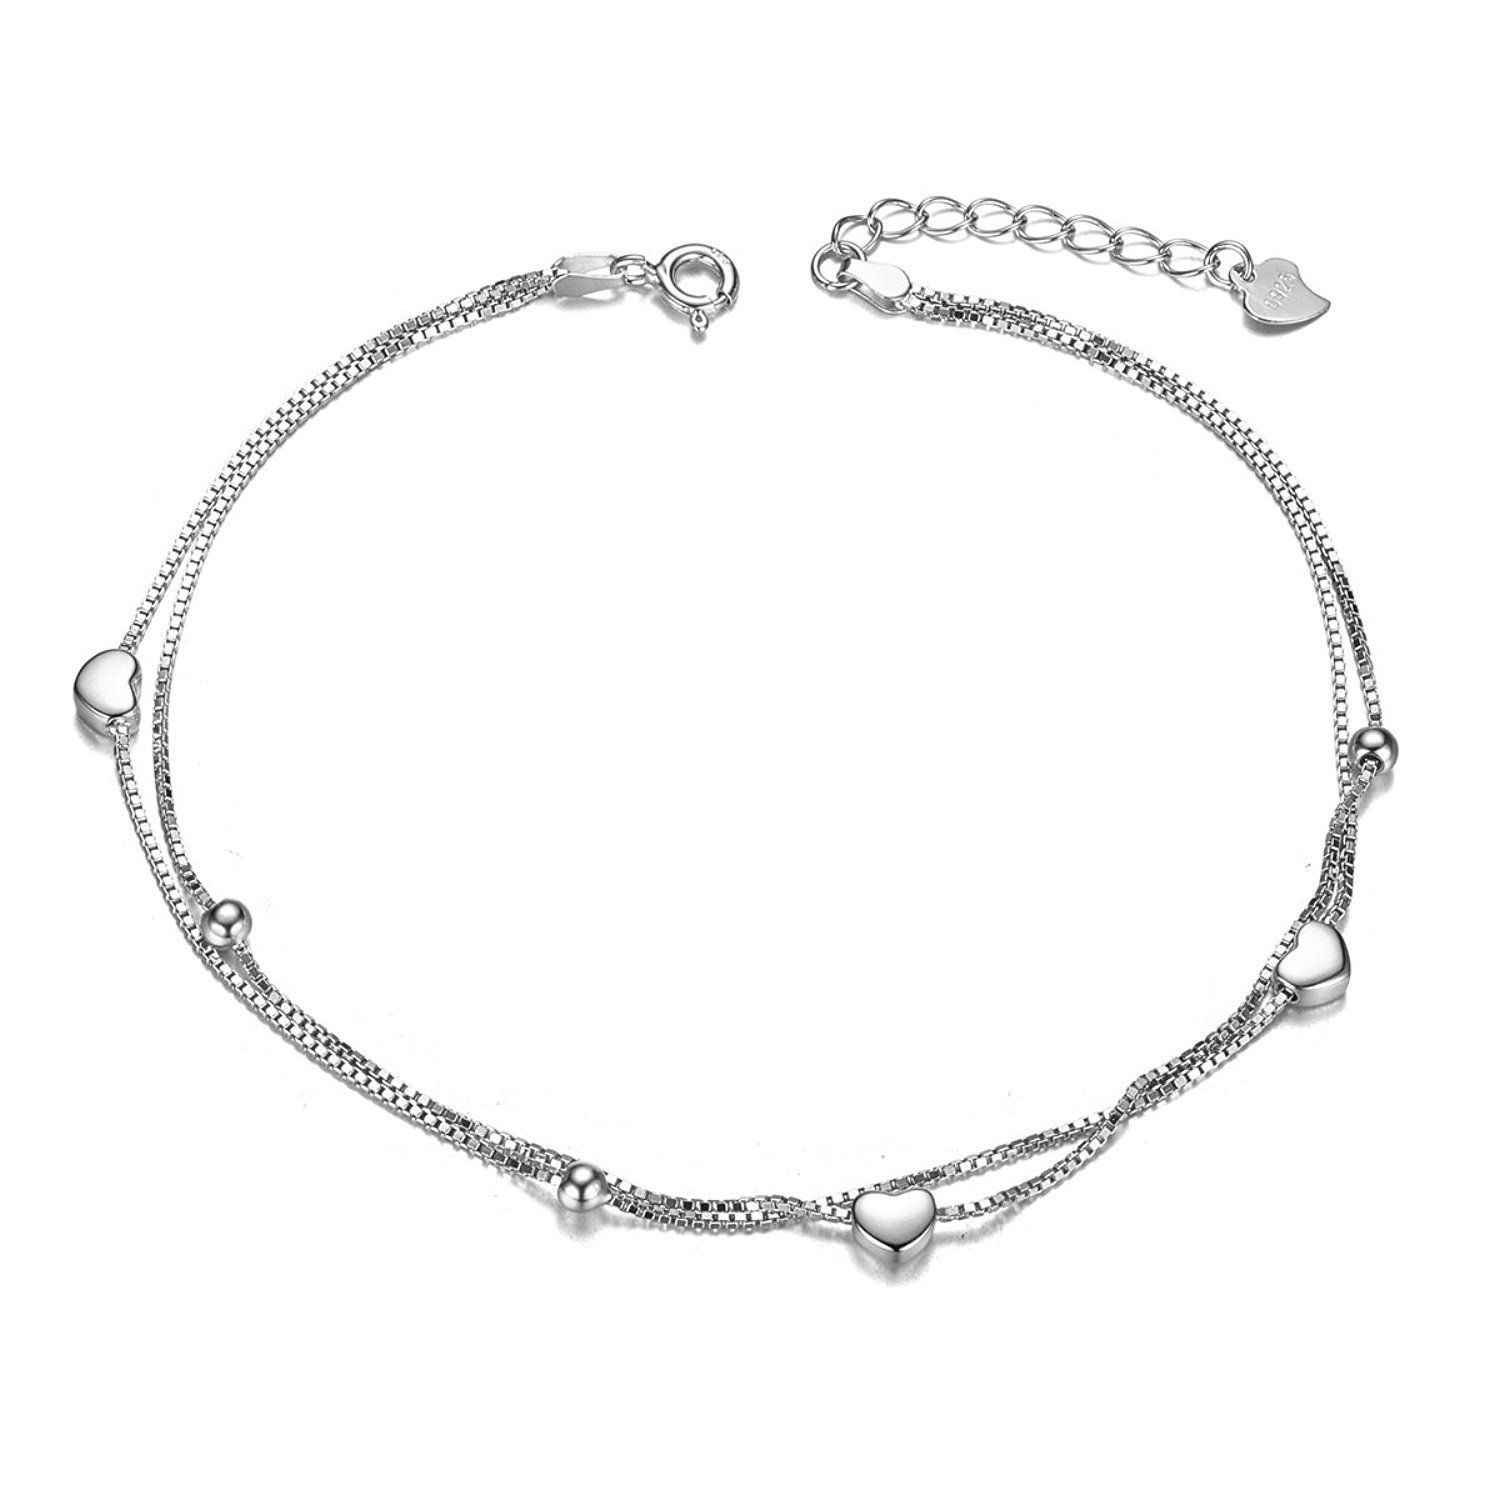 SHEGRACE 925 Sterling Silver Anklet with Triple Layered Chain and Beads Platinum for Woman uL0WhyI